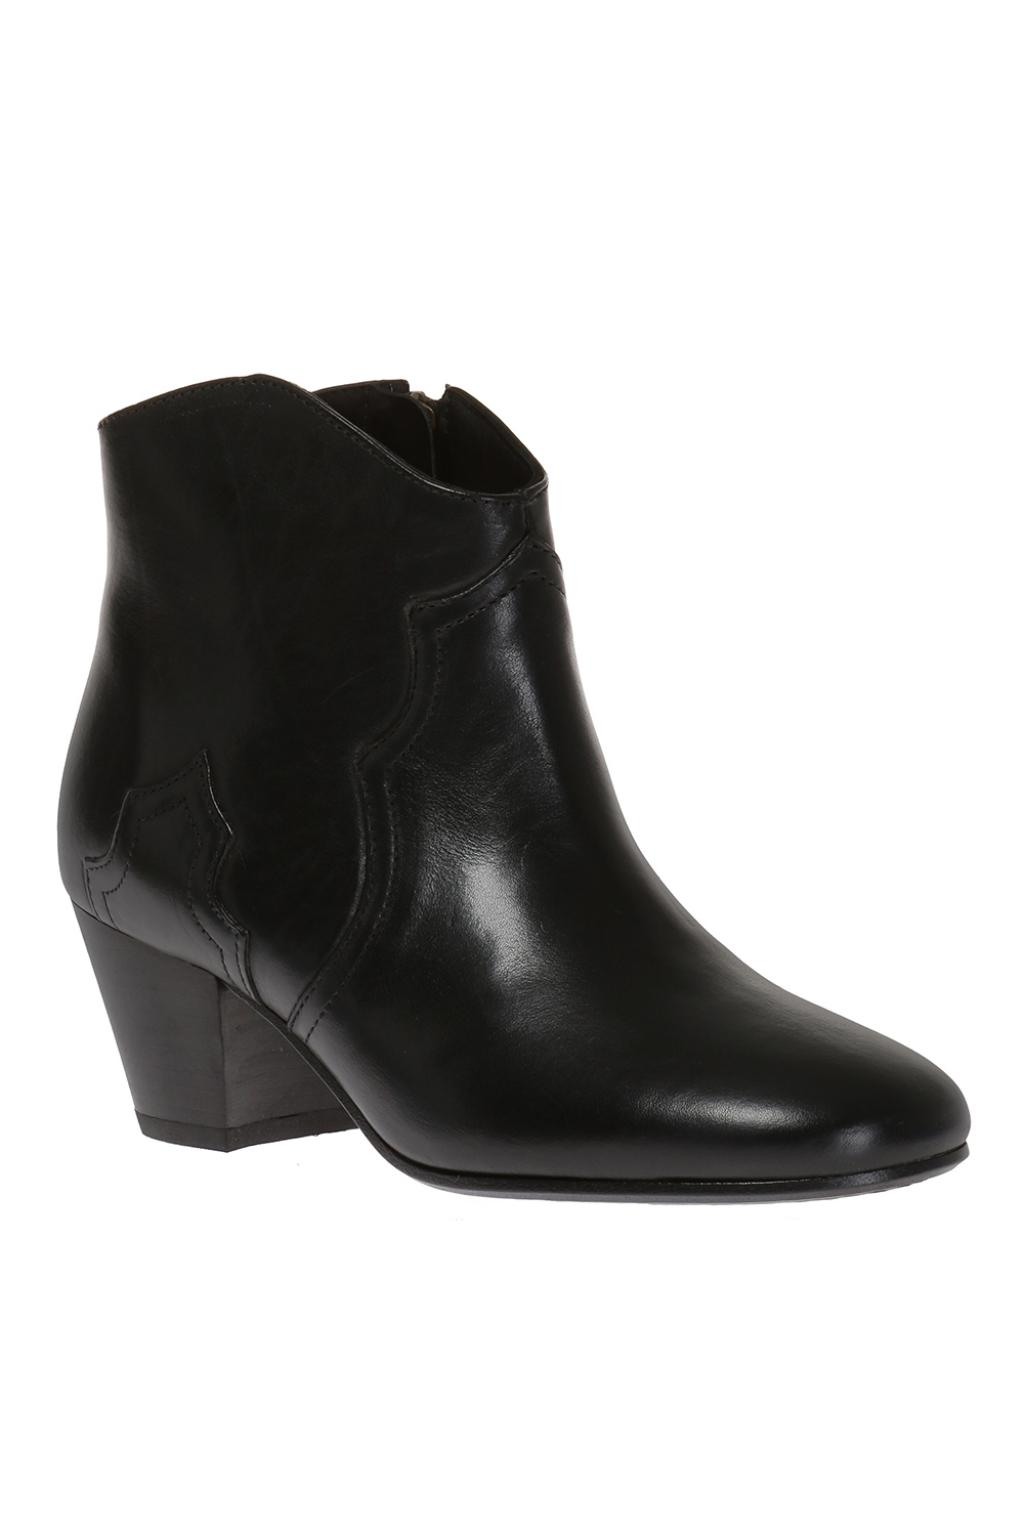 Isabel Marant 'Dicker' leather heel ankle boots